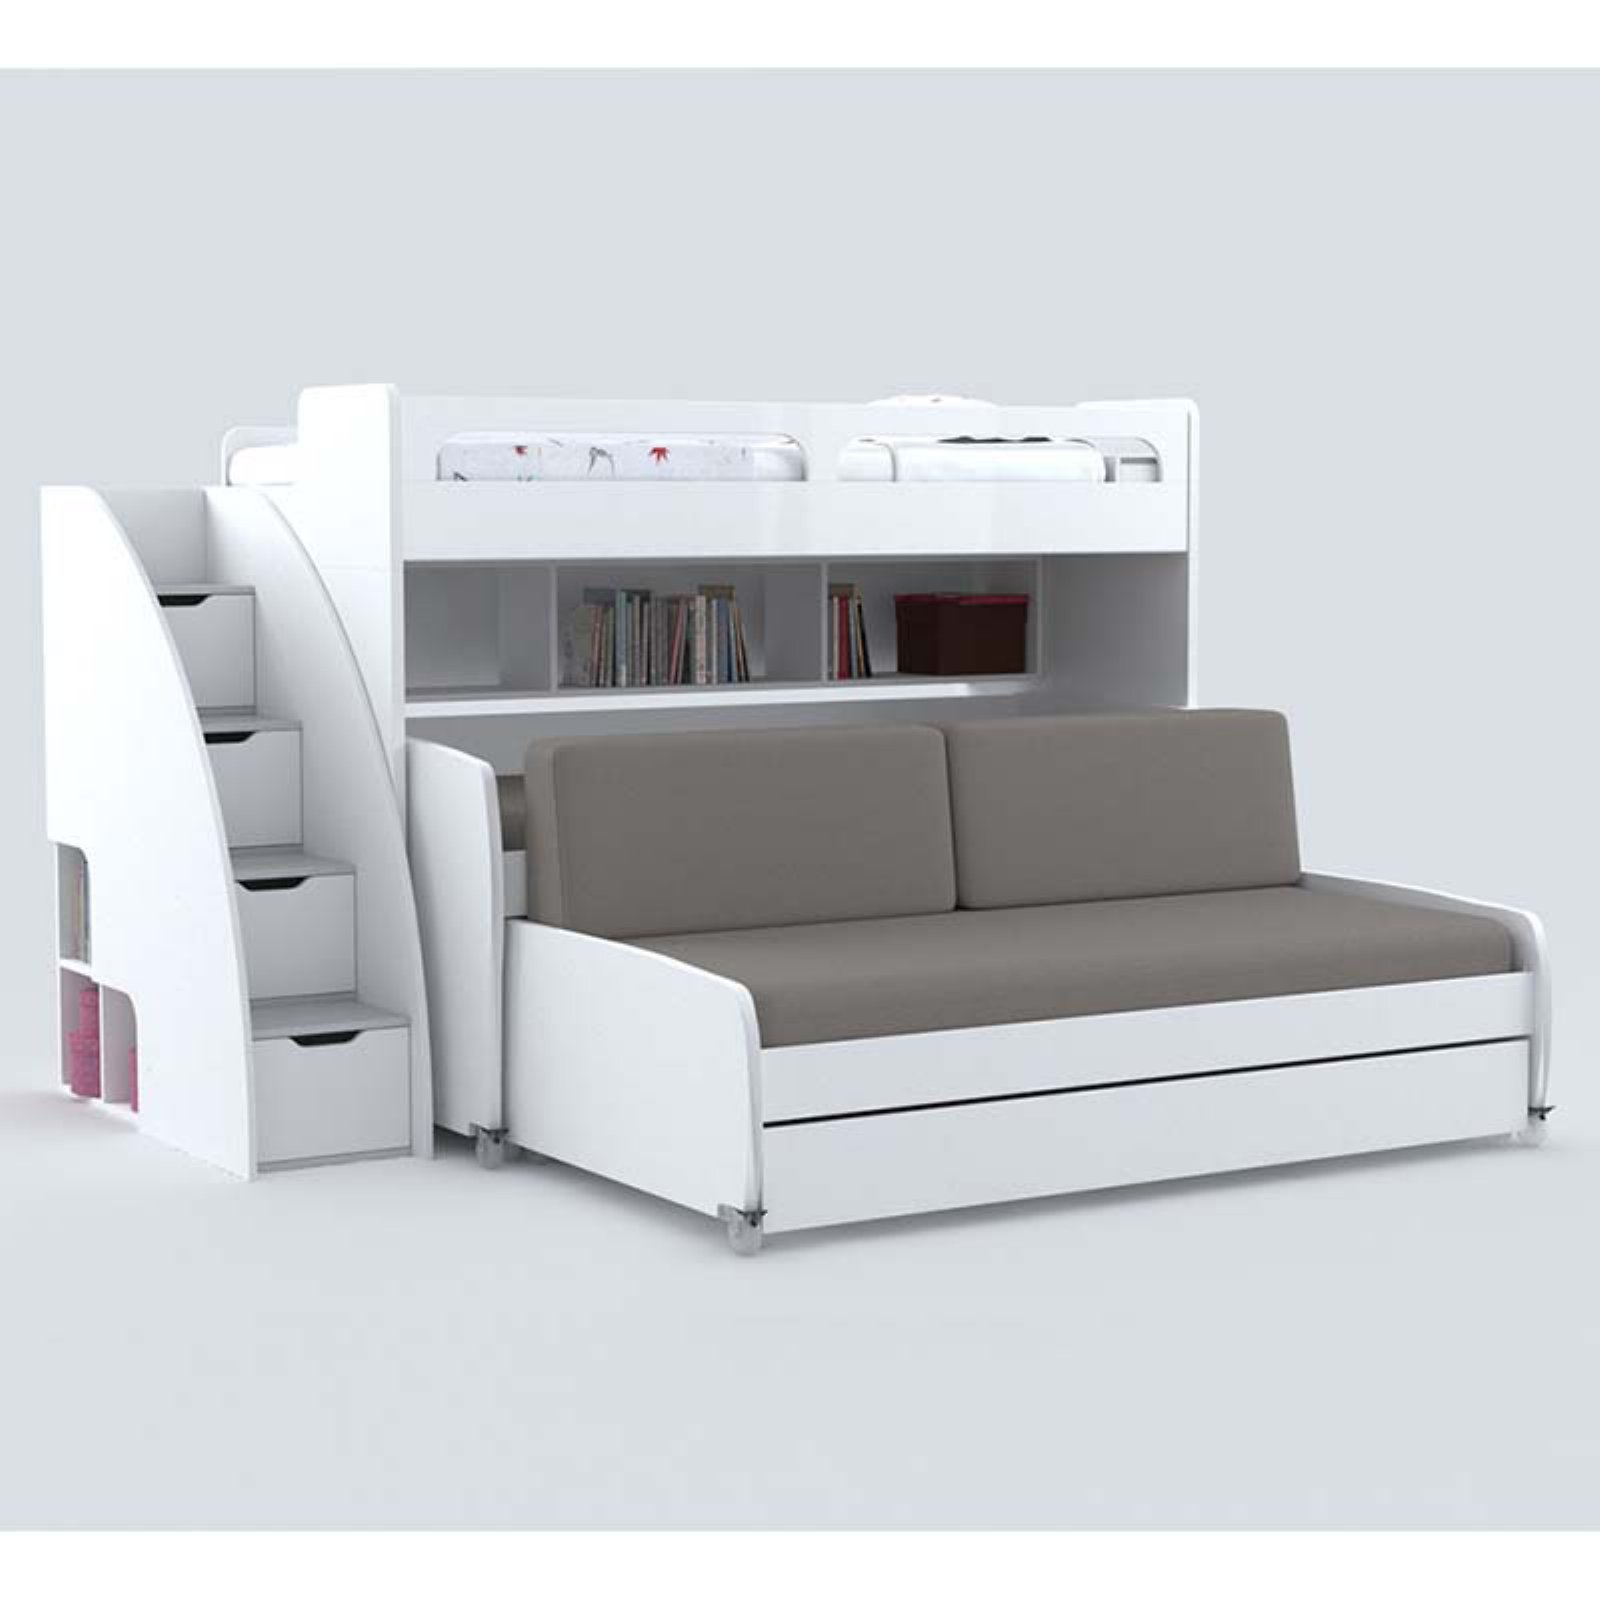 Multimo Bel Mondo Grande Storage Daybed with Loft Bed and Two Trundles